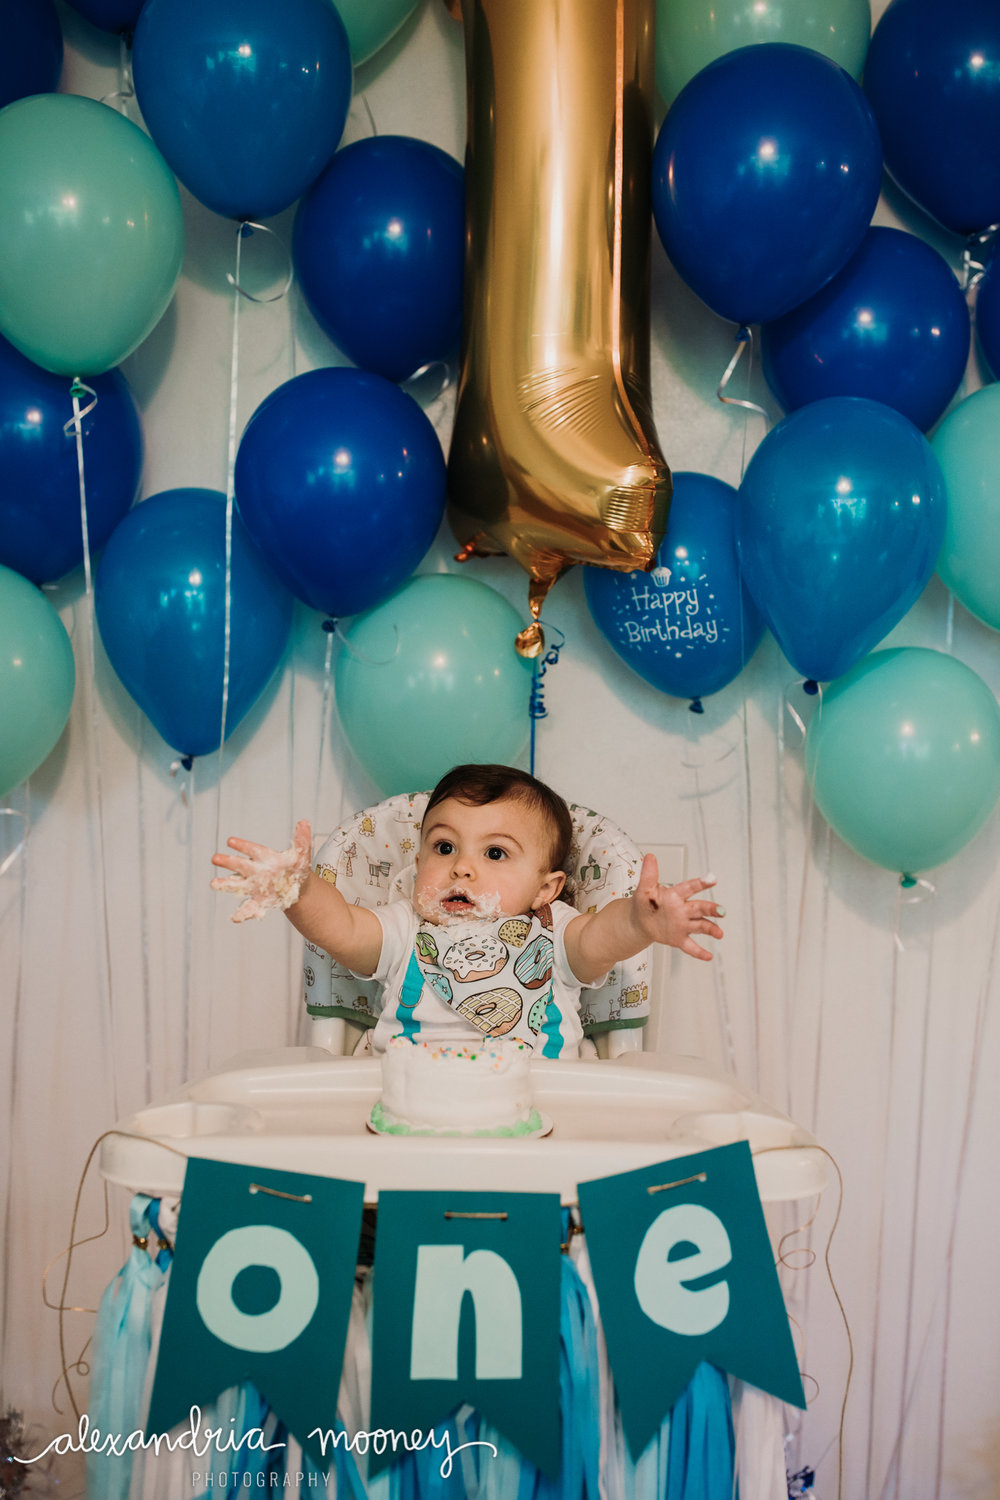 OliverFirstBirthday_Watermarked-4.jpg